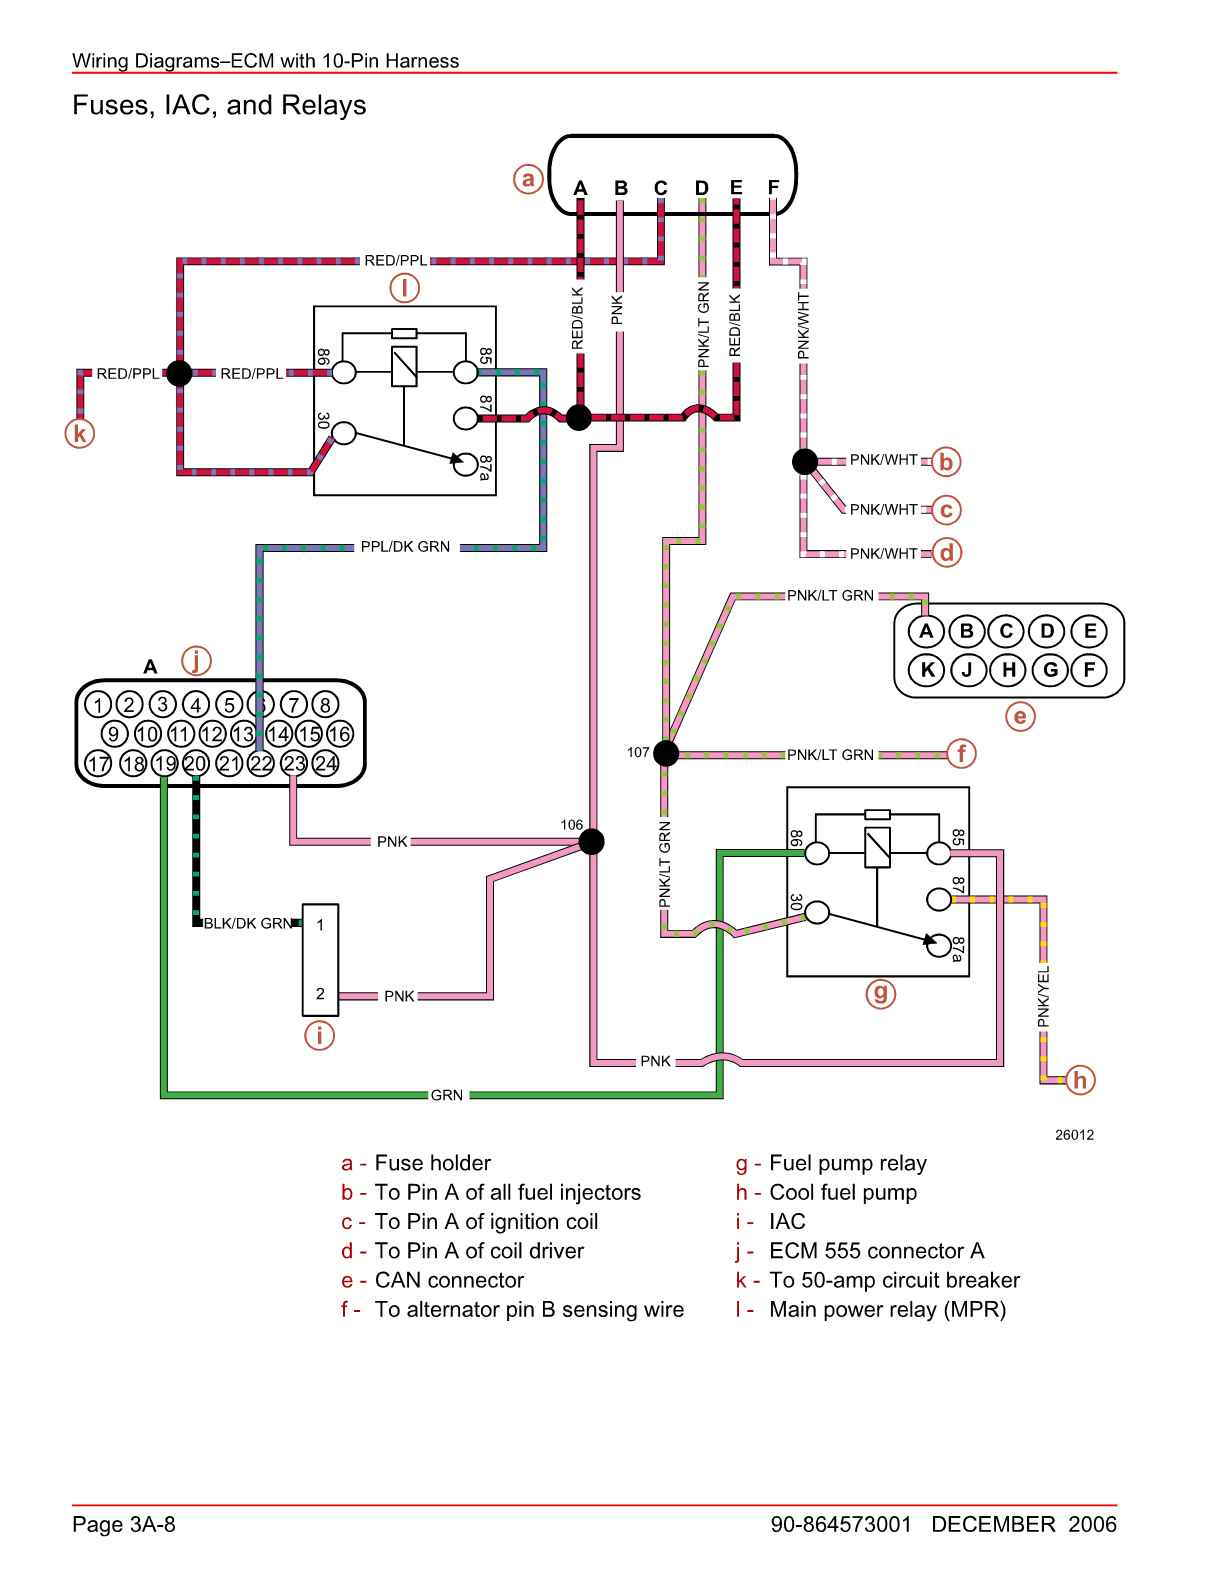 hight resolution of here are the diagrams showing both note the pink wire coming from connector a pin 23 that is the 12v feed to the ecm